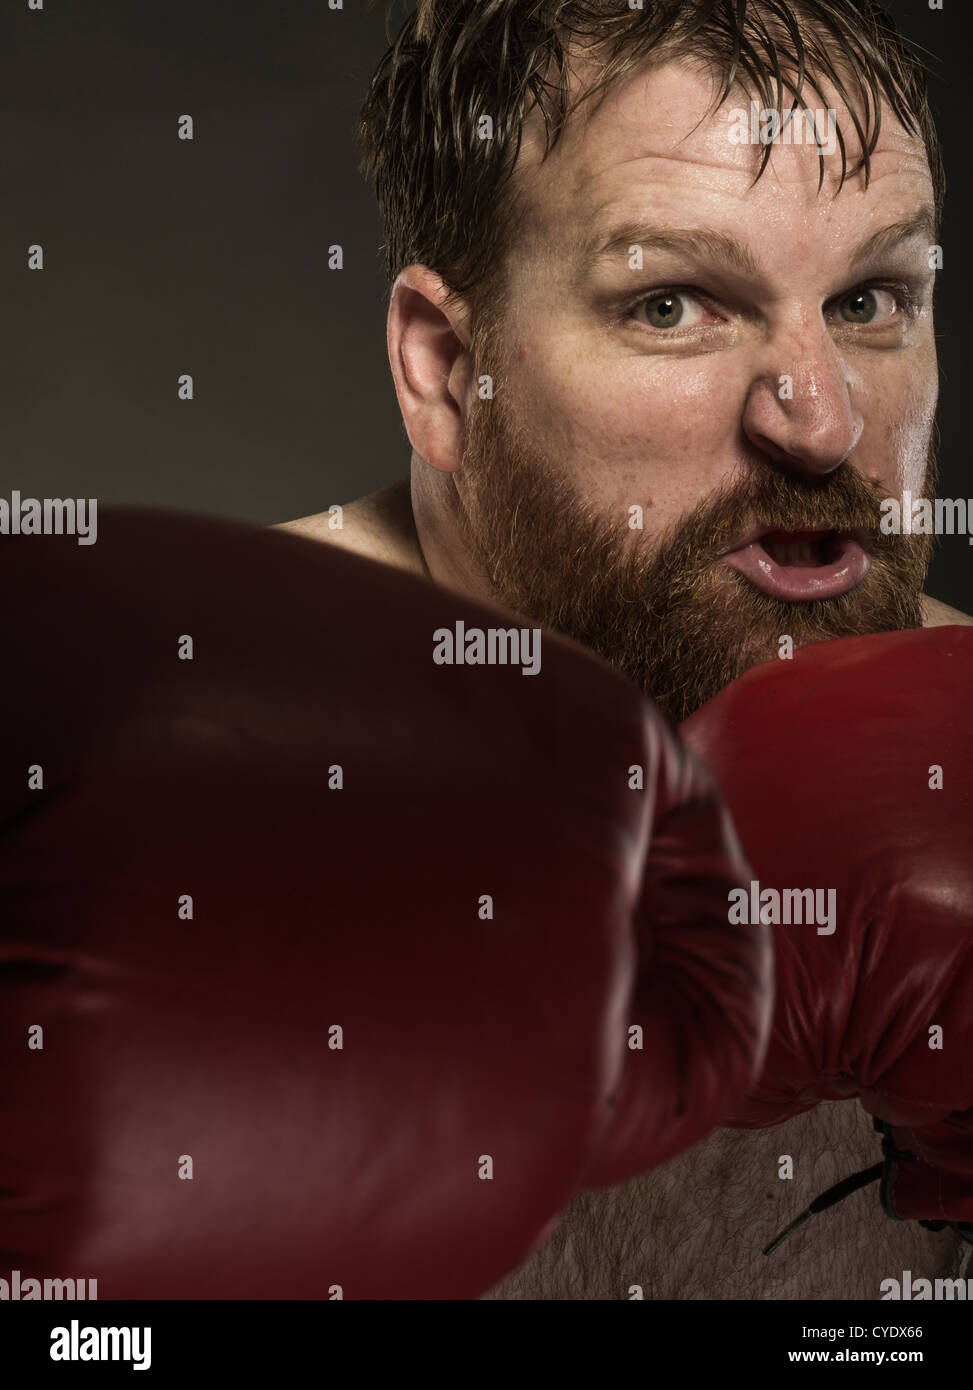 Heavyweight Boxer with red gloves and beard - Stock Image